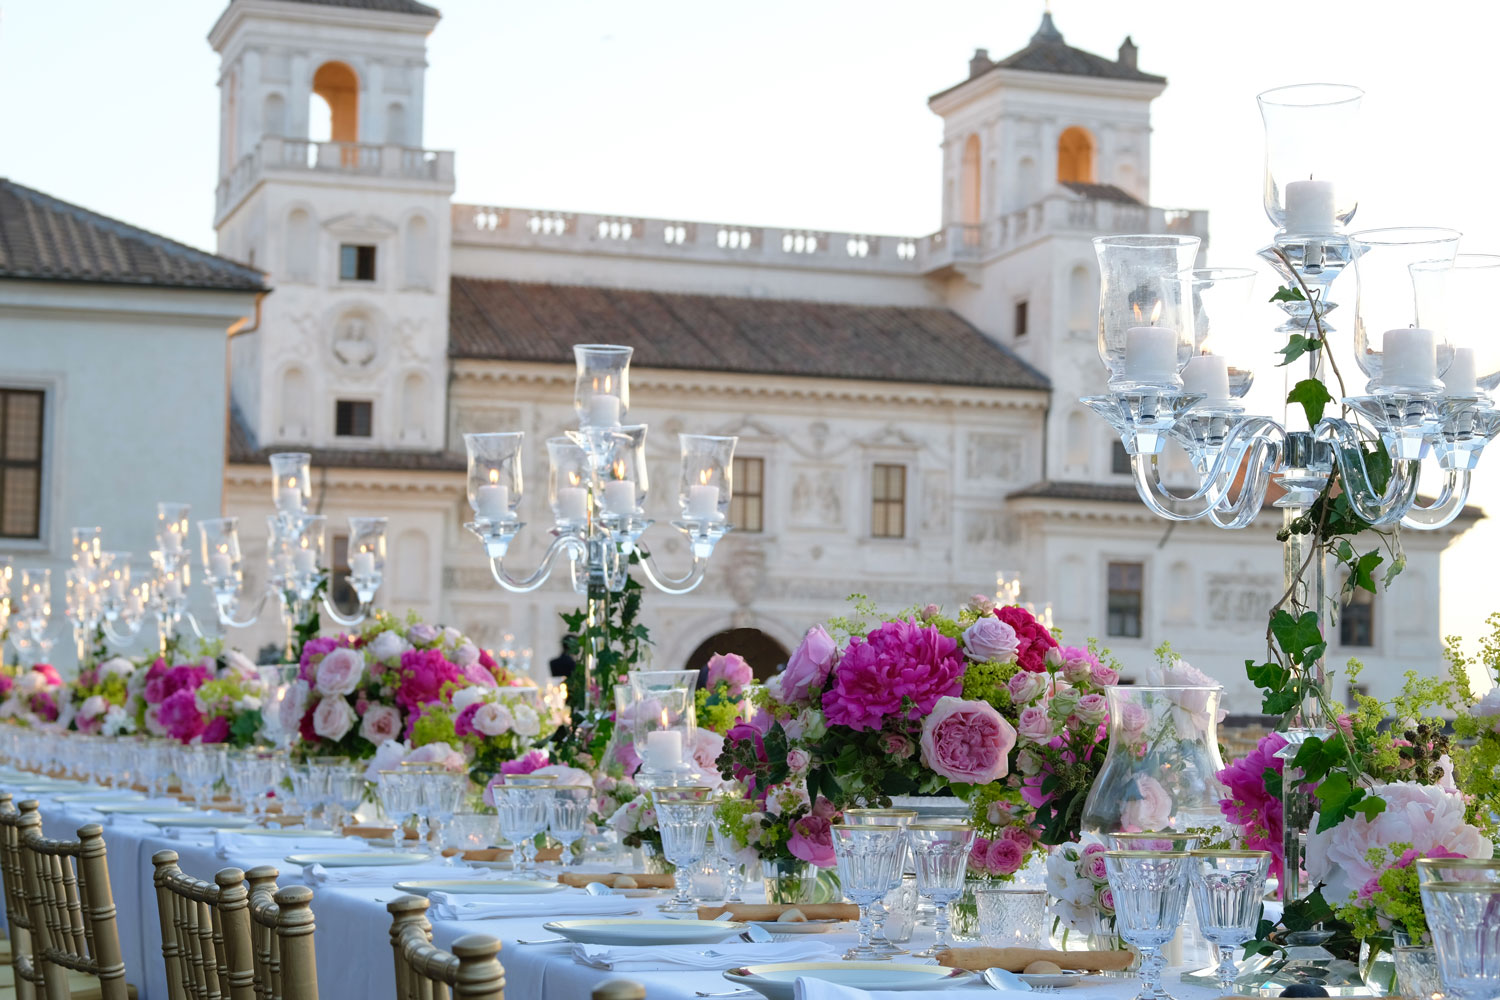 VILLA MEDICI WEDDING